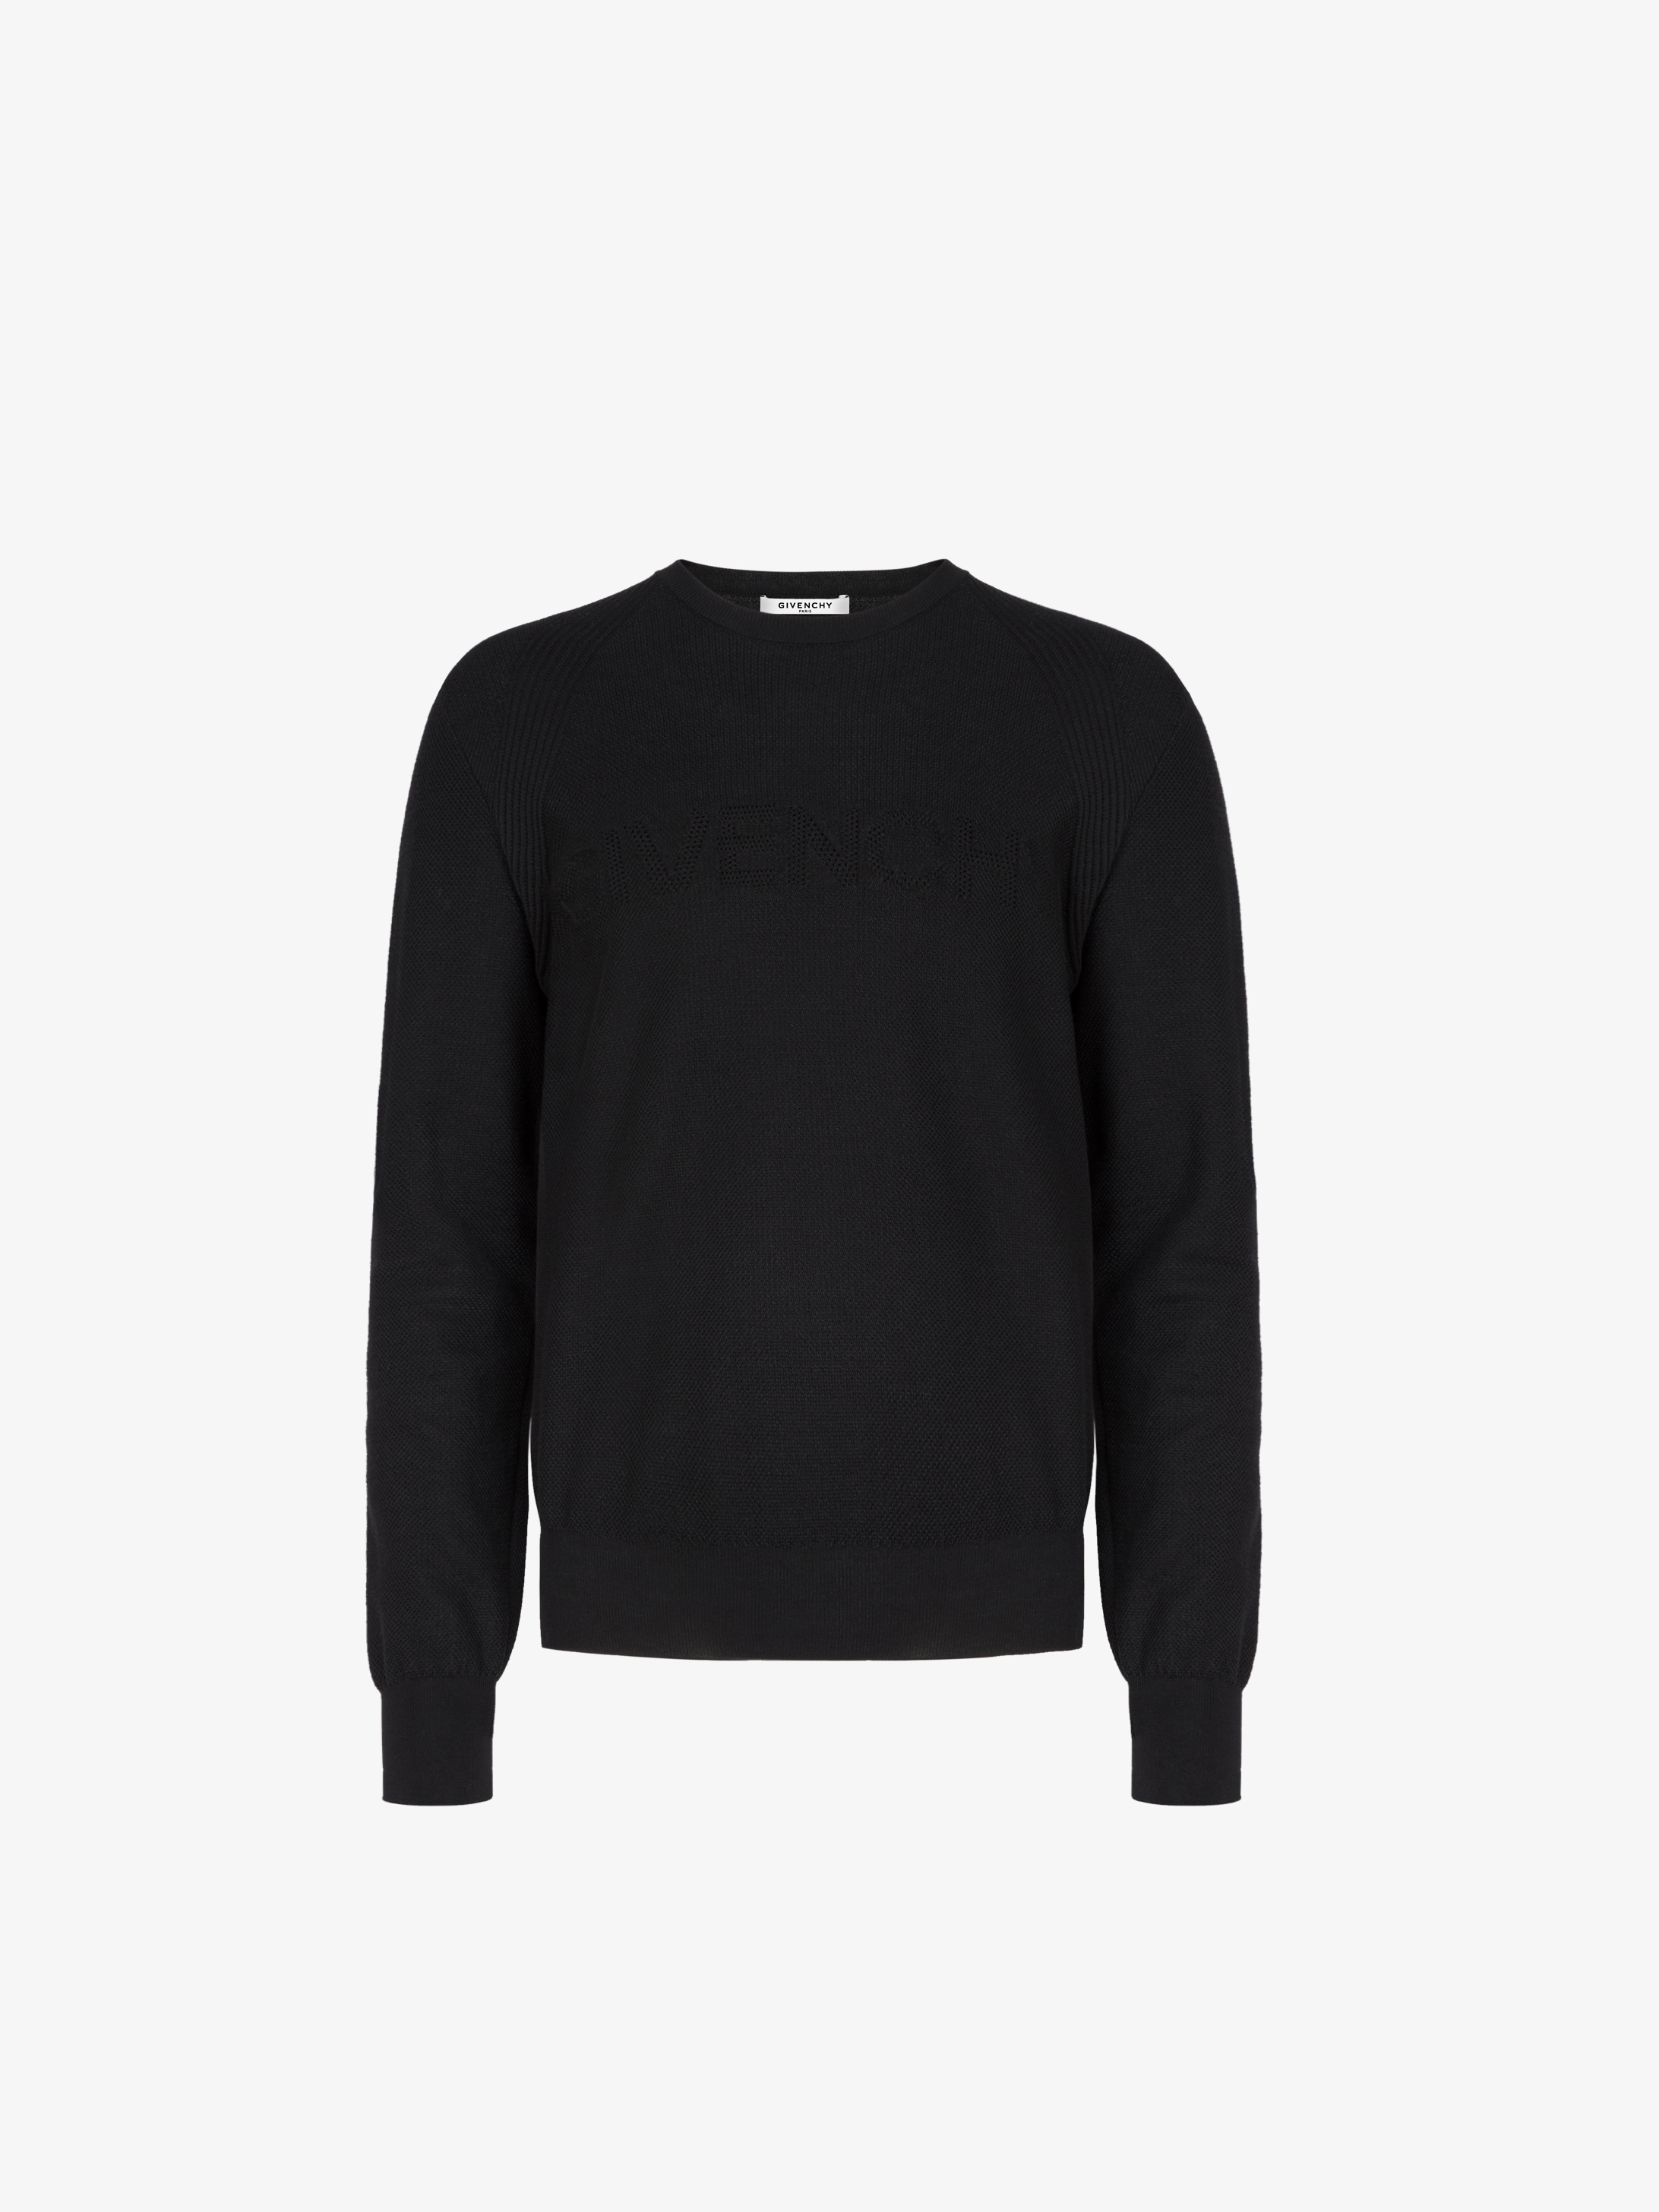 GIVENCHY signature perforated sweater in cotton